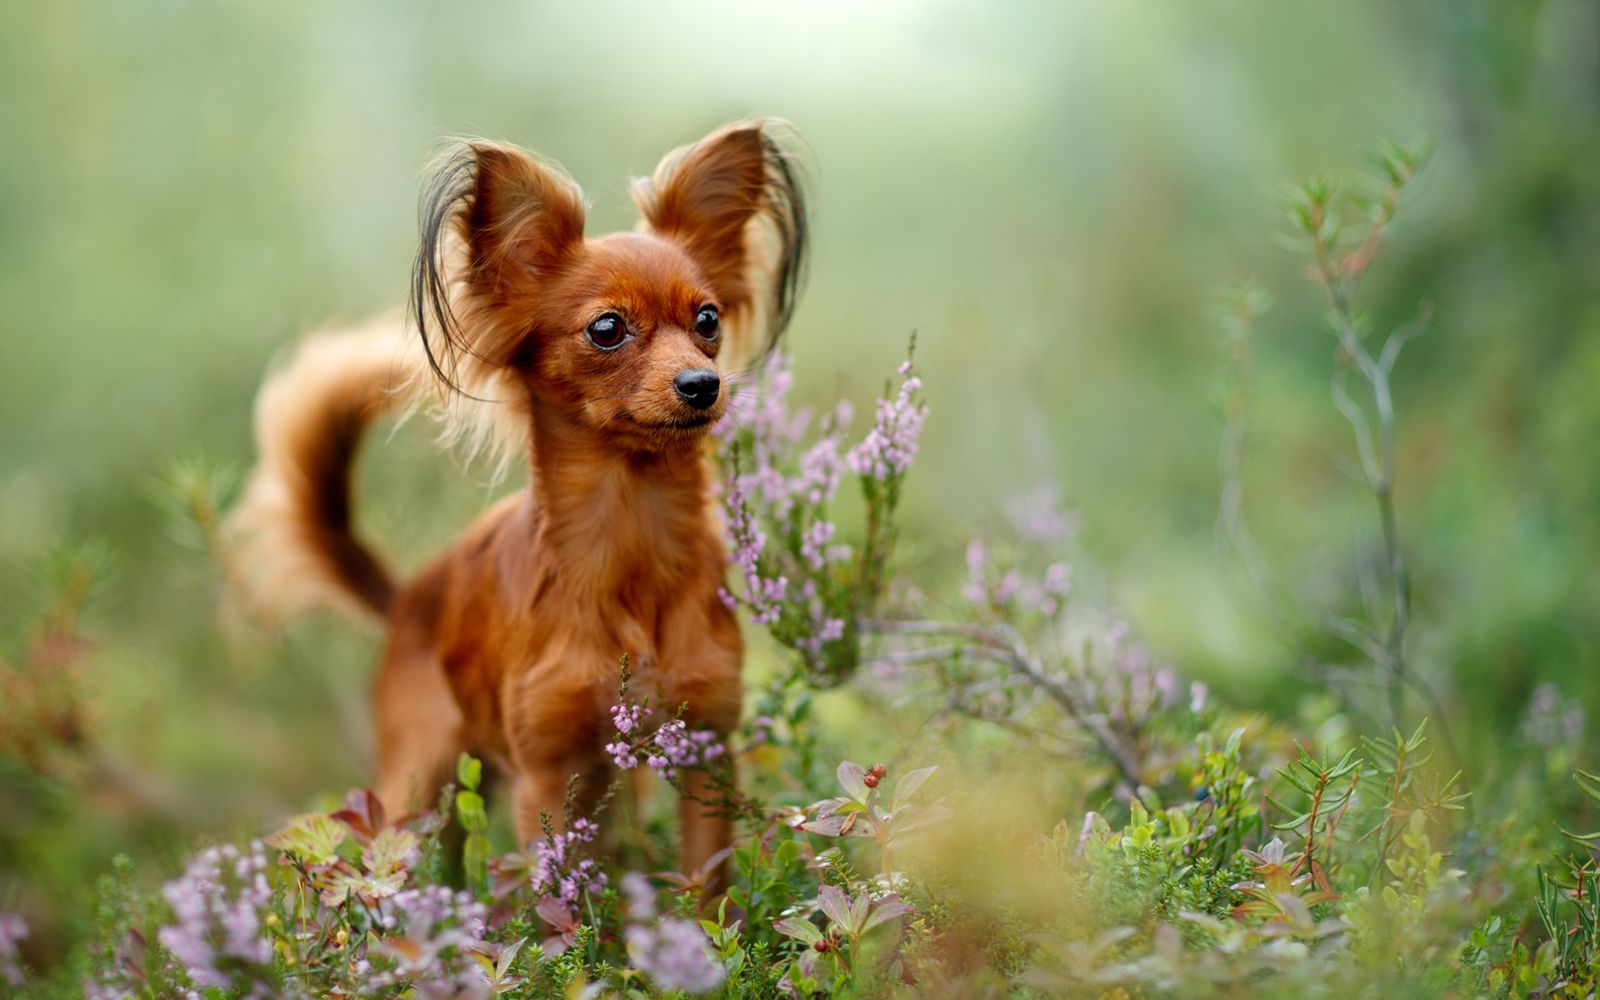 Russian Toy Terrier - Main